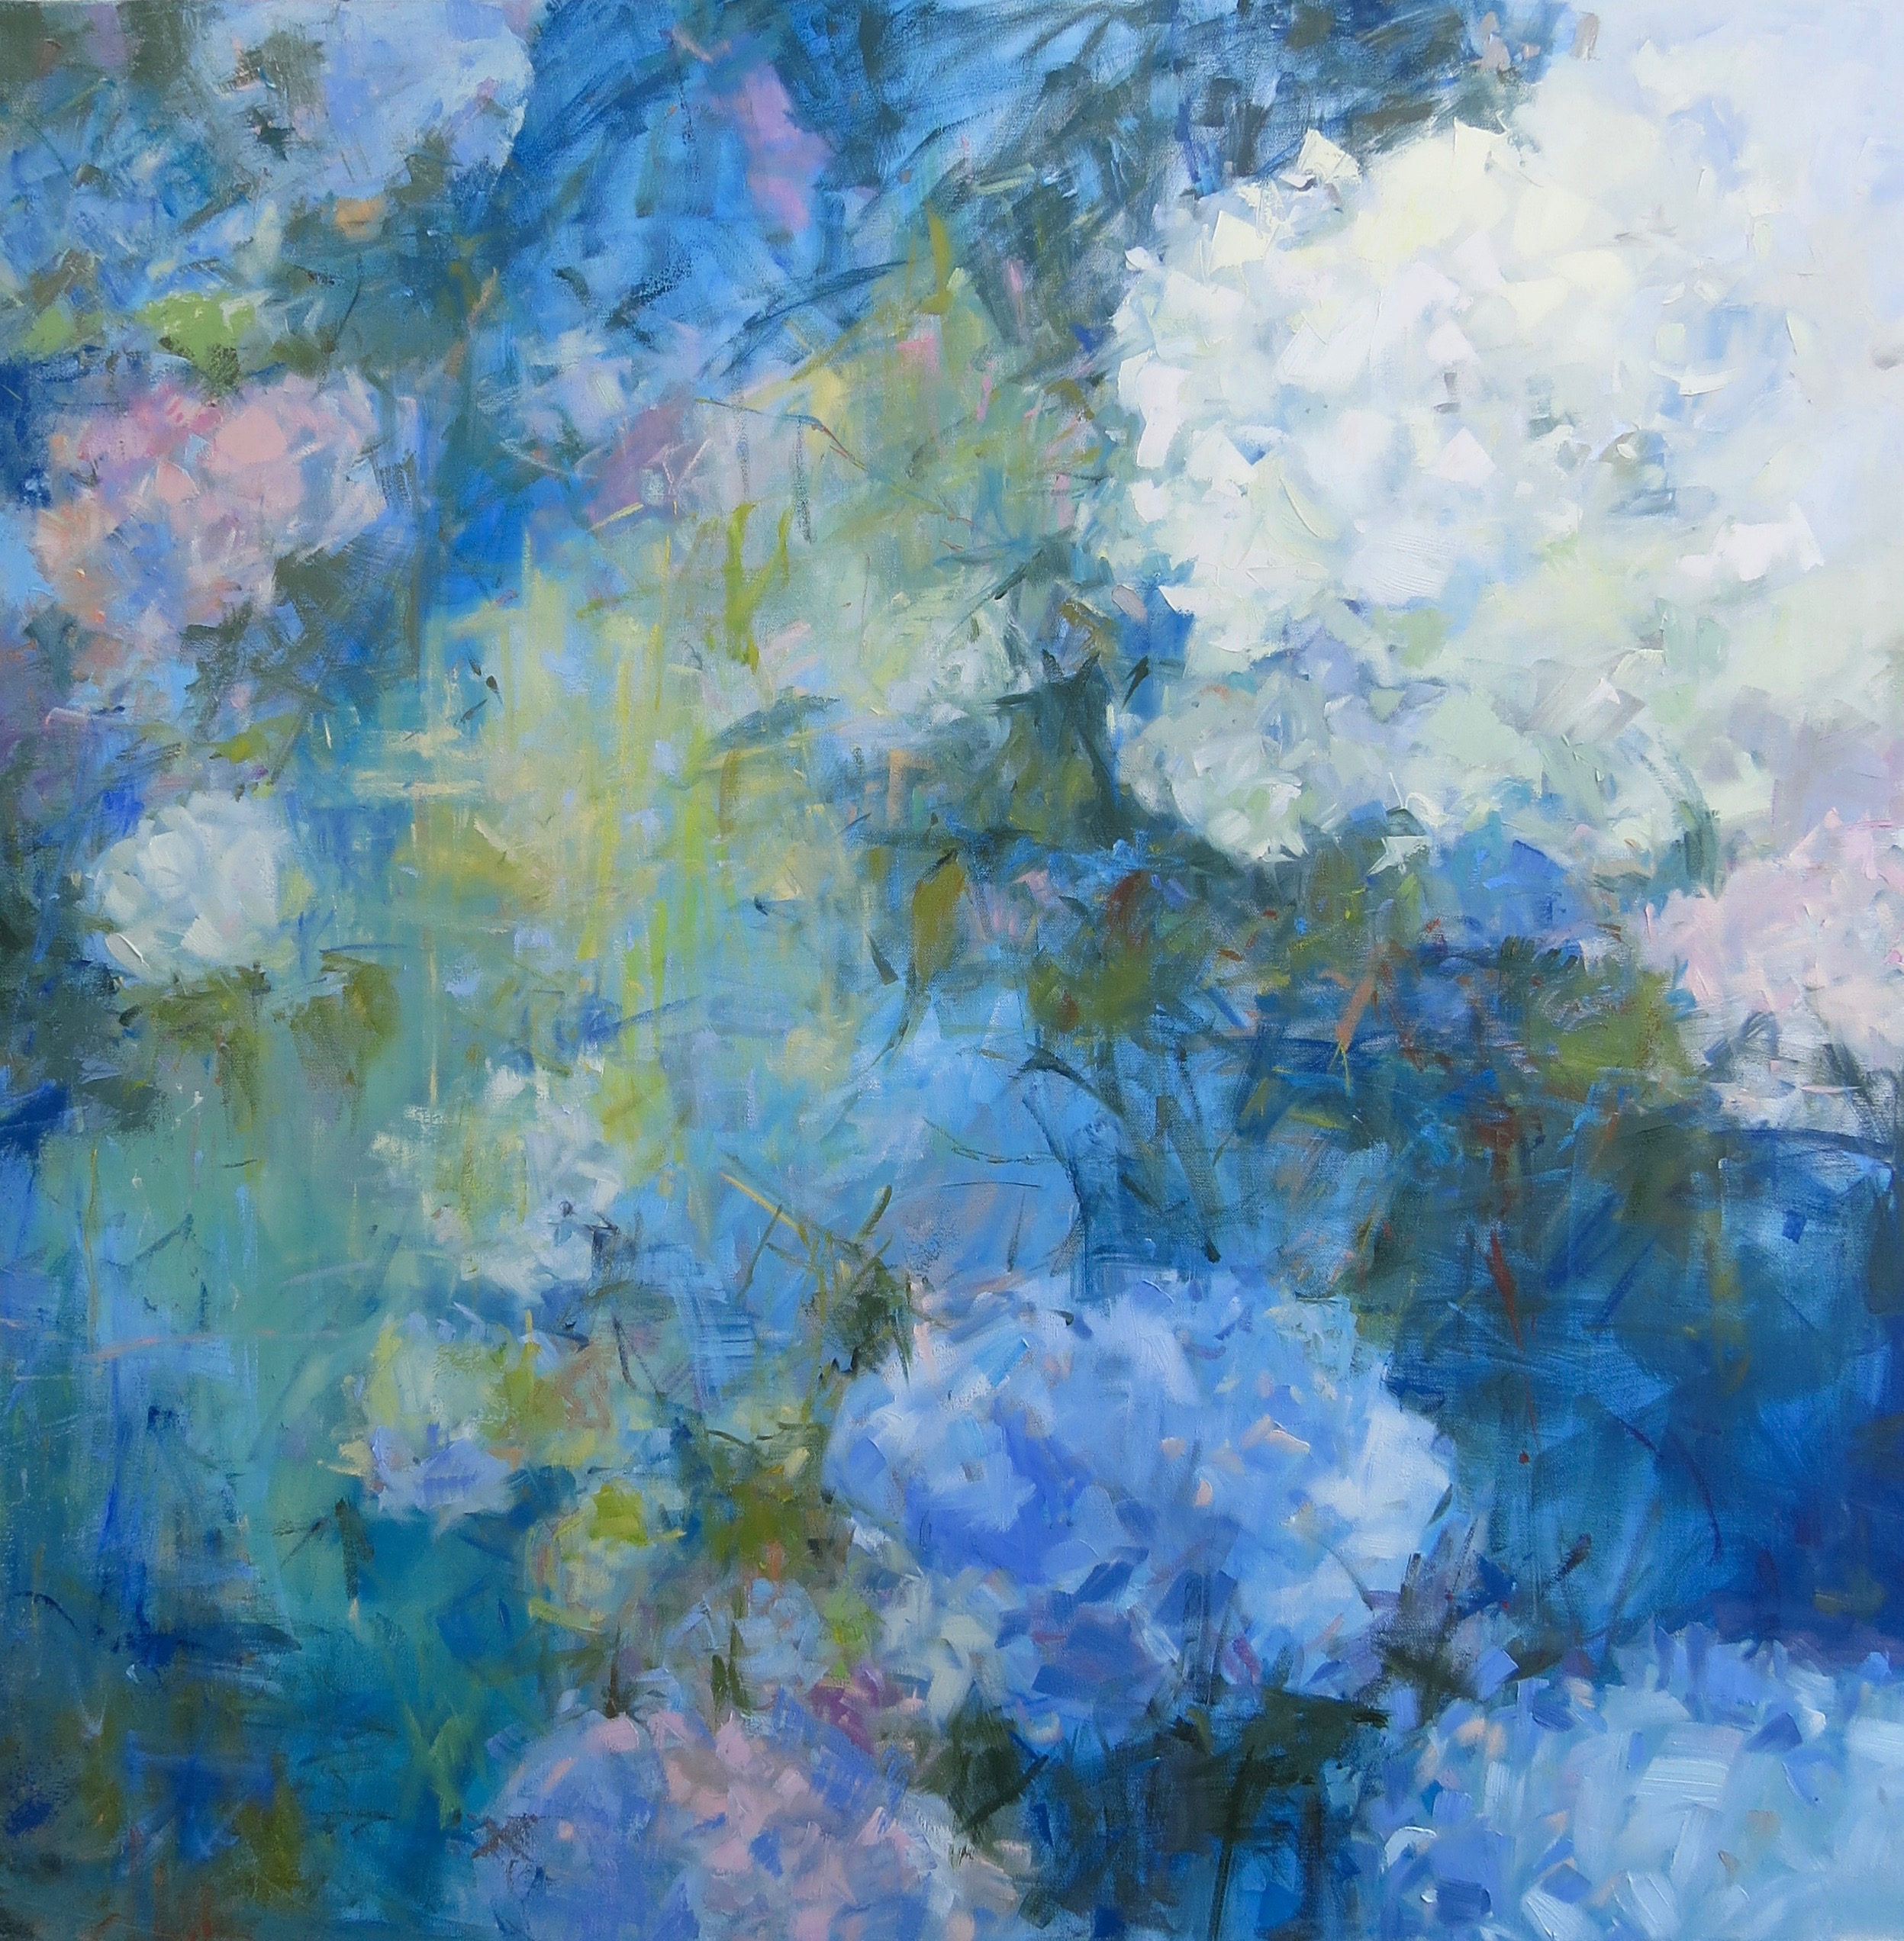 Garden Party: A Series Of Abstract Florals By Marissa Vogl